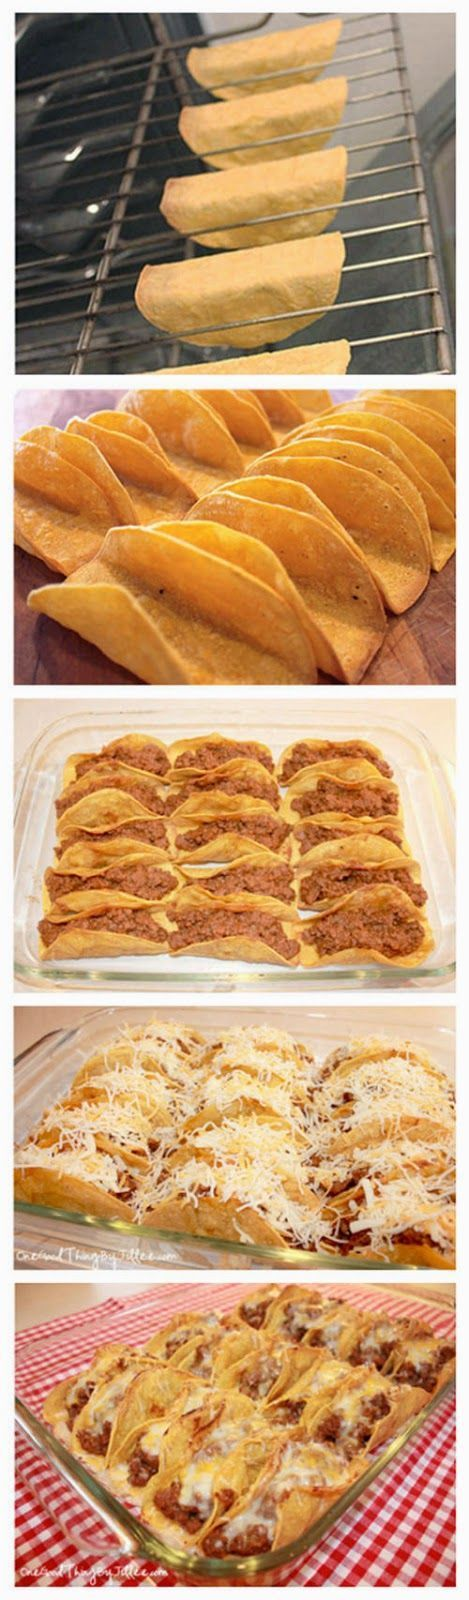 Baked Taco Shells Ingredients: 2 lbs ground beef 1 can refried beans 15 ounce…